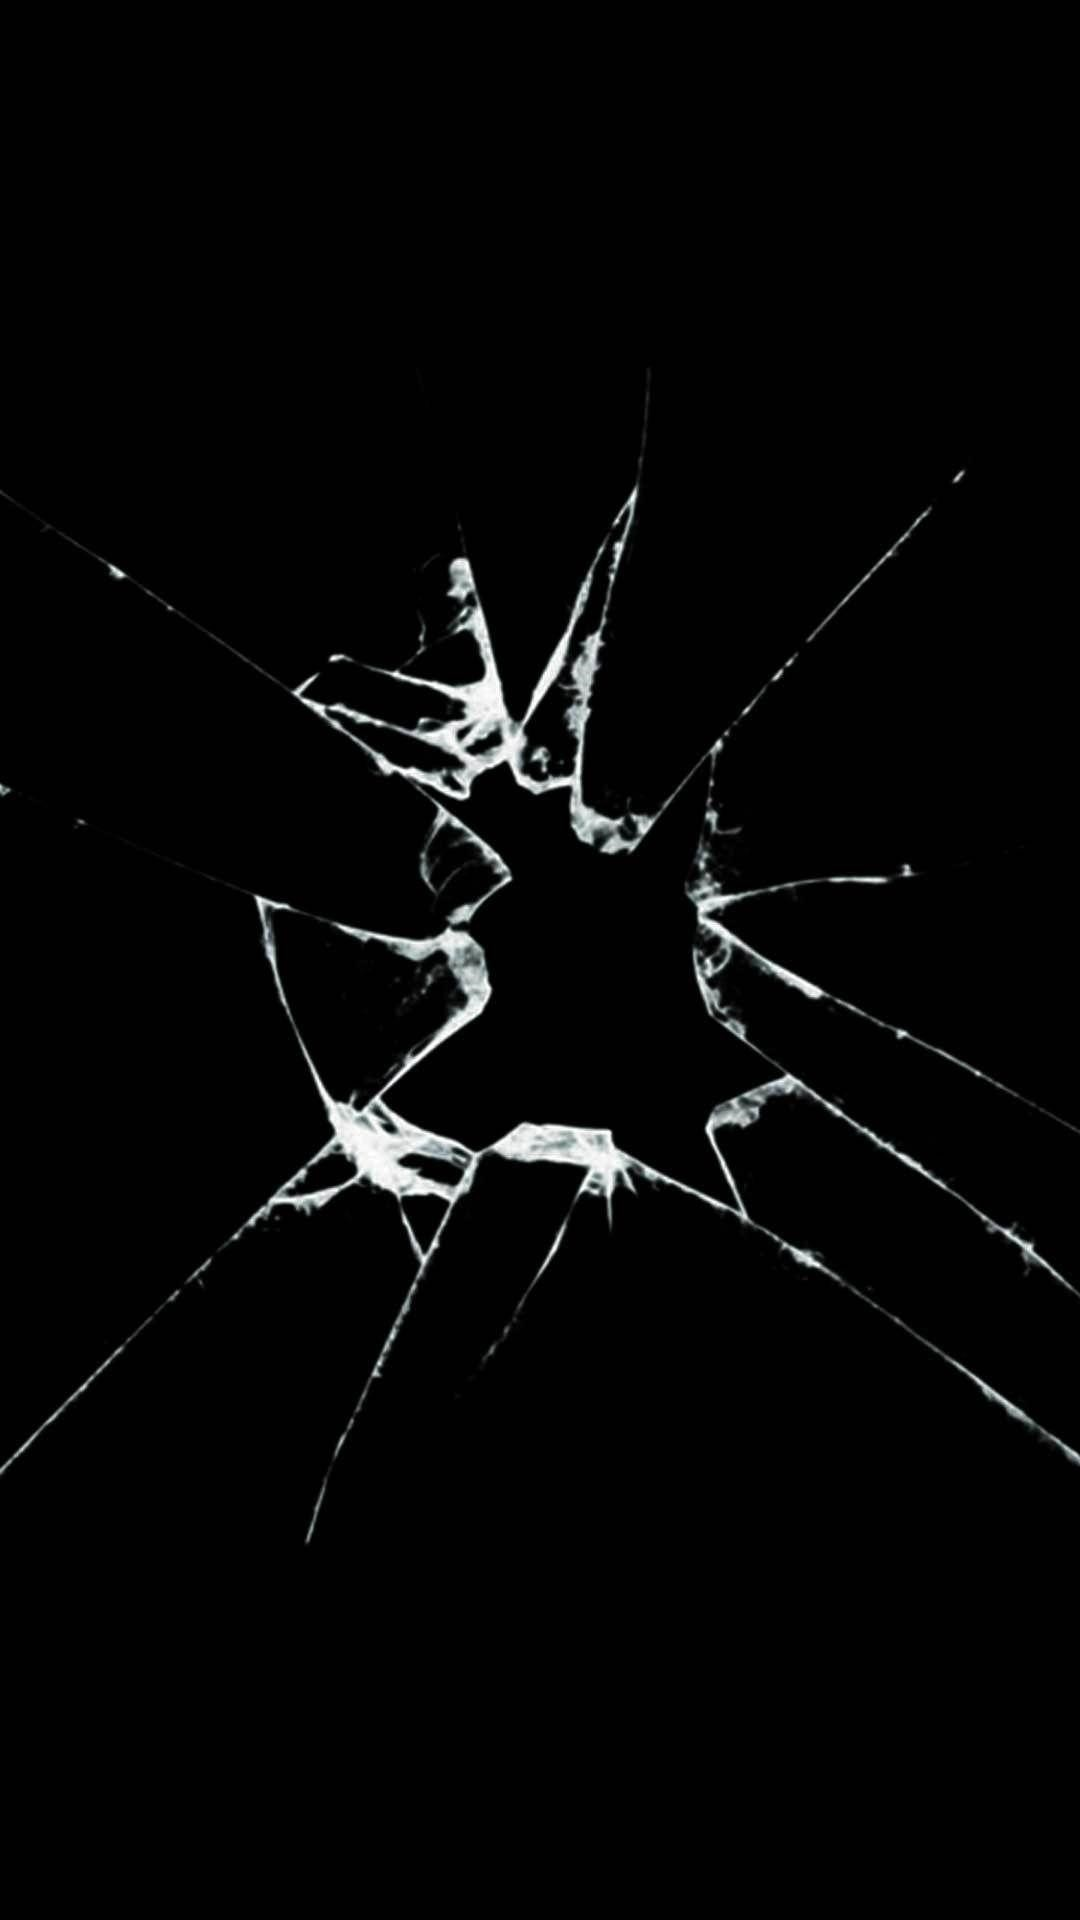 Cracked Screen wallpaper for iPhone